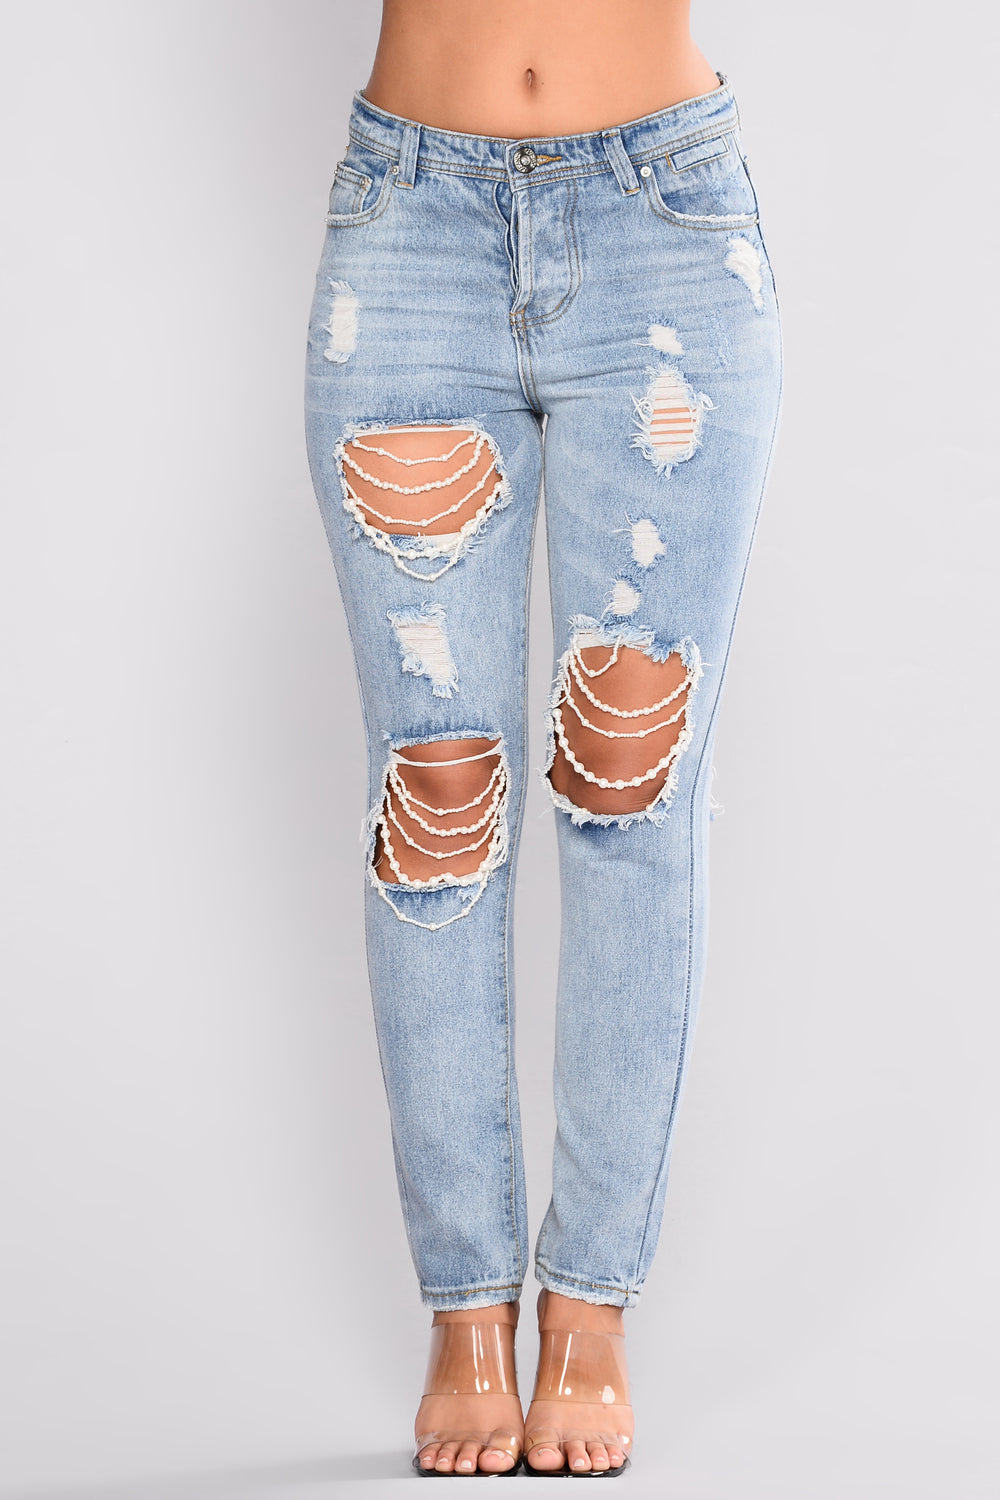 Fresca Pearl Boyfriend Jeans - Light Blue Wash